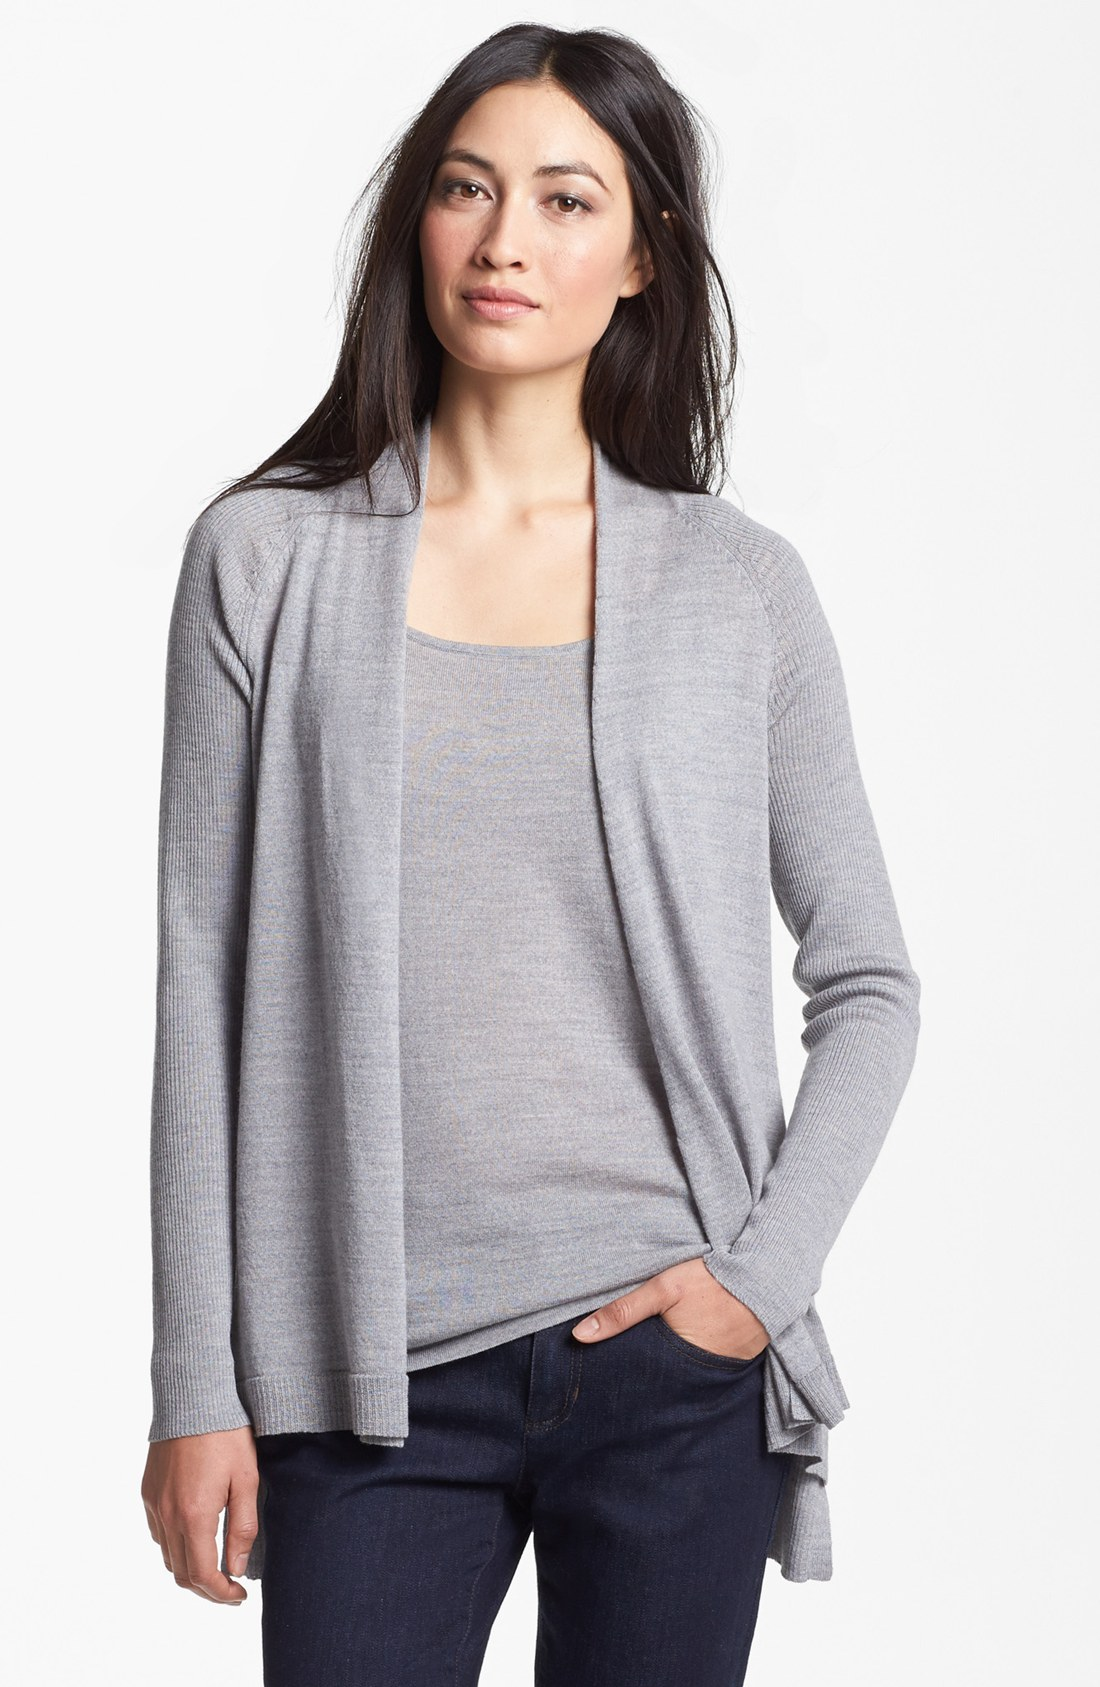 Women's petite cardigans with an asymmetrical hem add flirty charm to any look. Some include fringe on the hemline, adding an extra whimsical touch. These cardigans can be light or heavyweight, adding just the right amount of warmth on a chilly day.